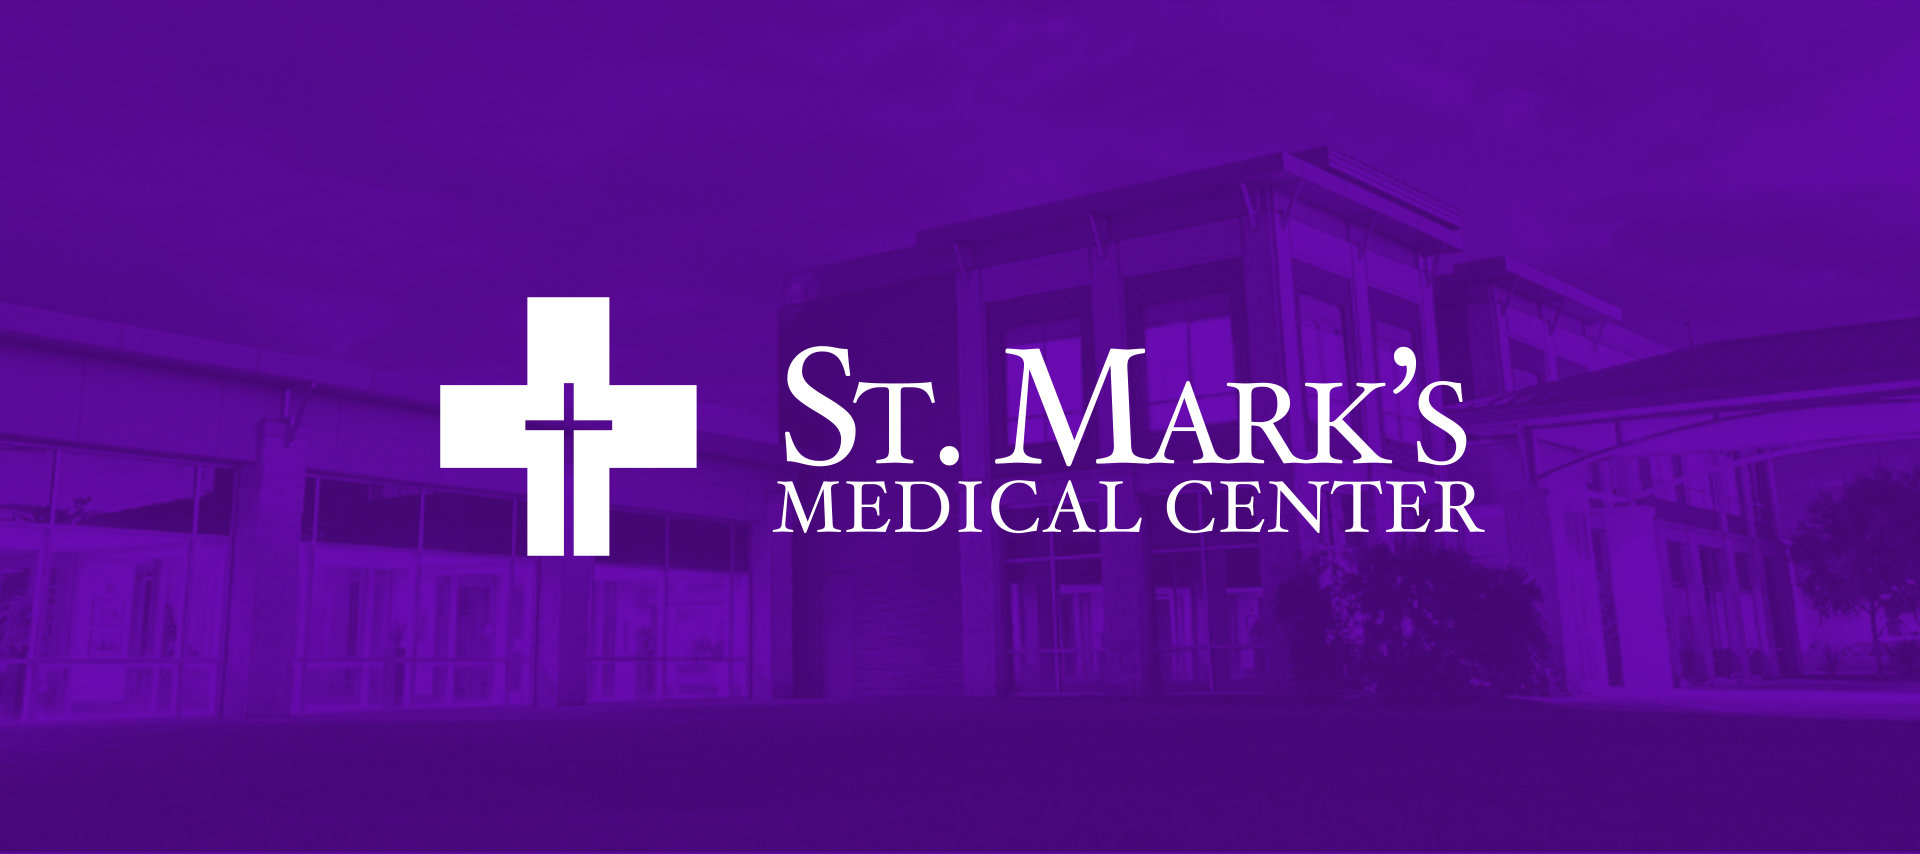 St. Marks Medical Center